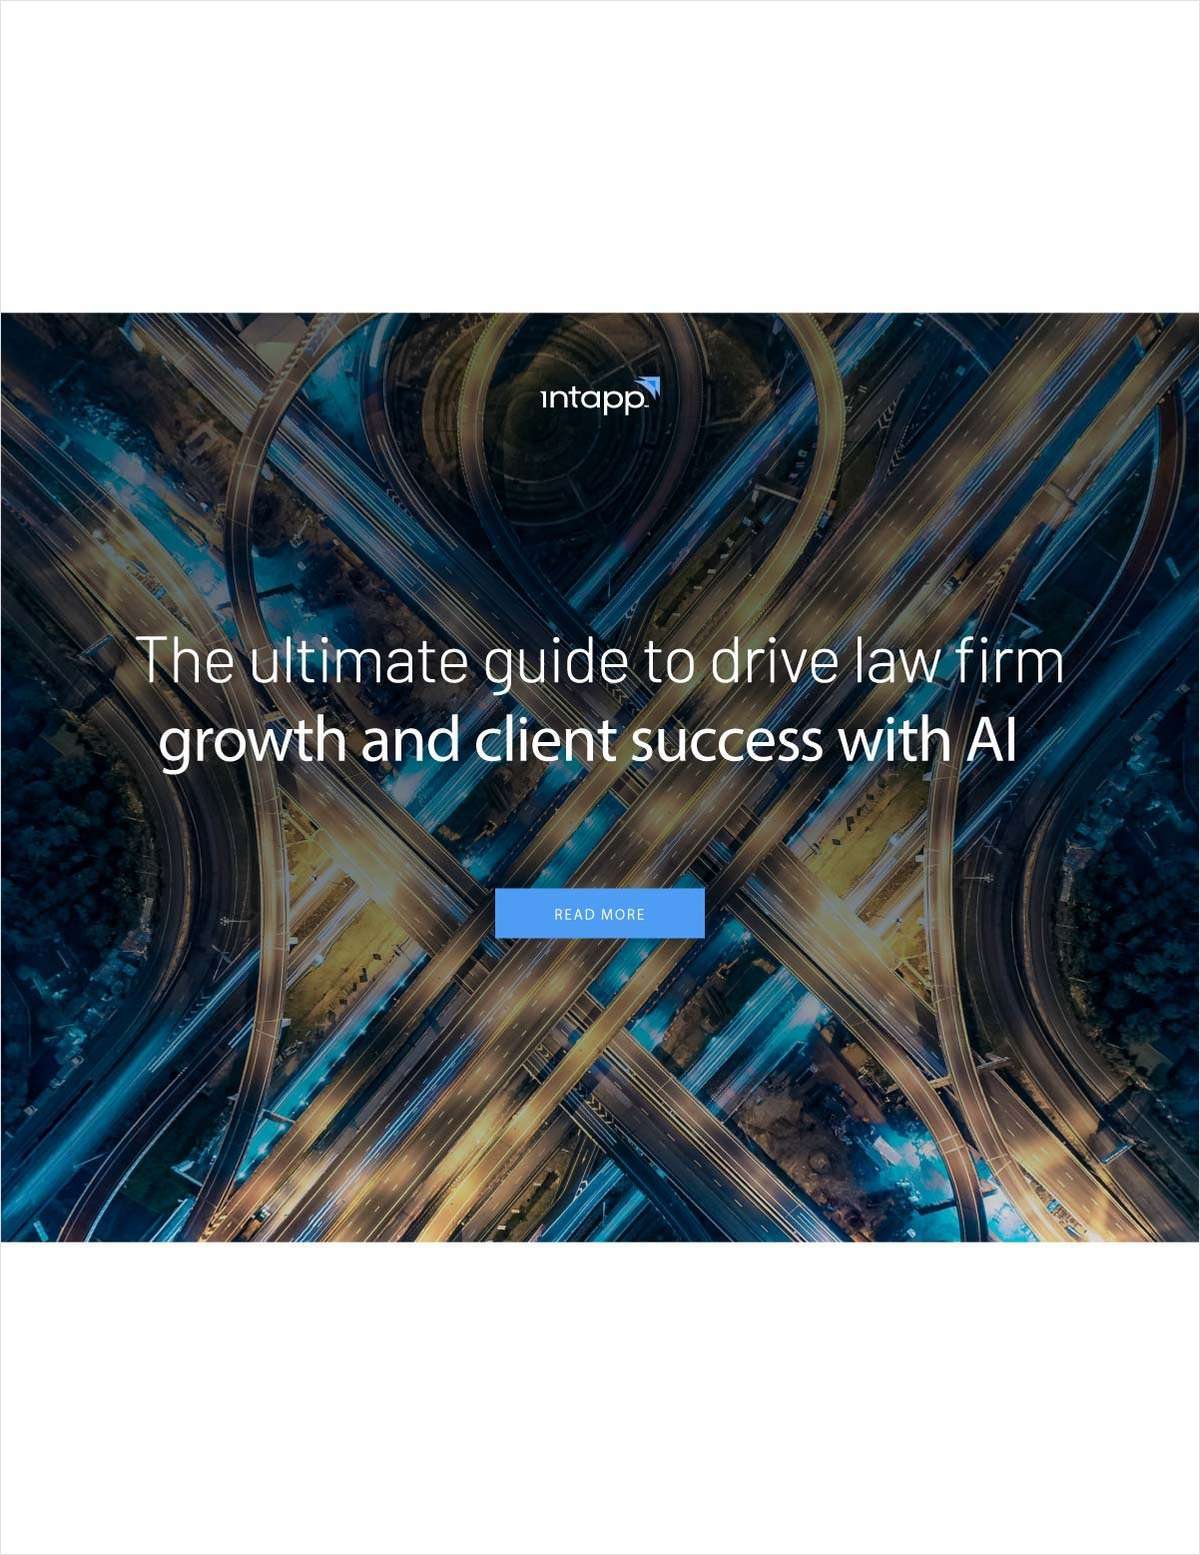 The Ultimate Guide to Drive Law Firm Growth and Client Success with AI